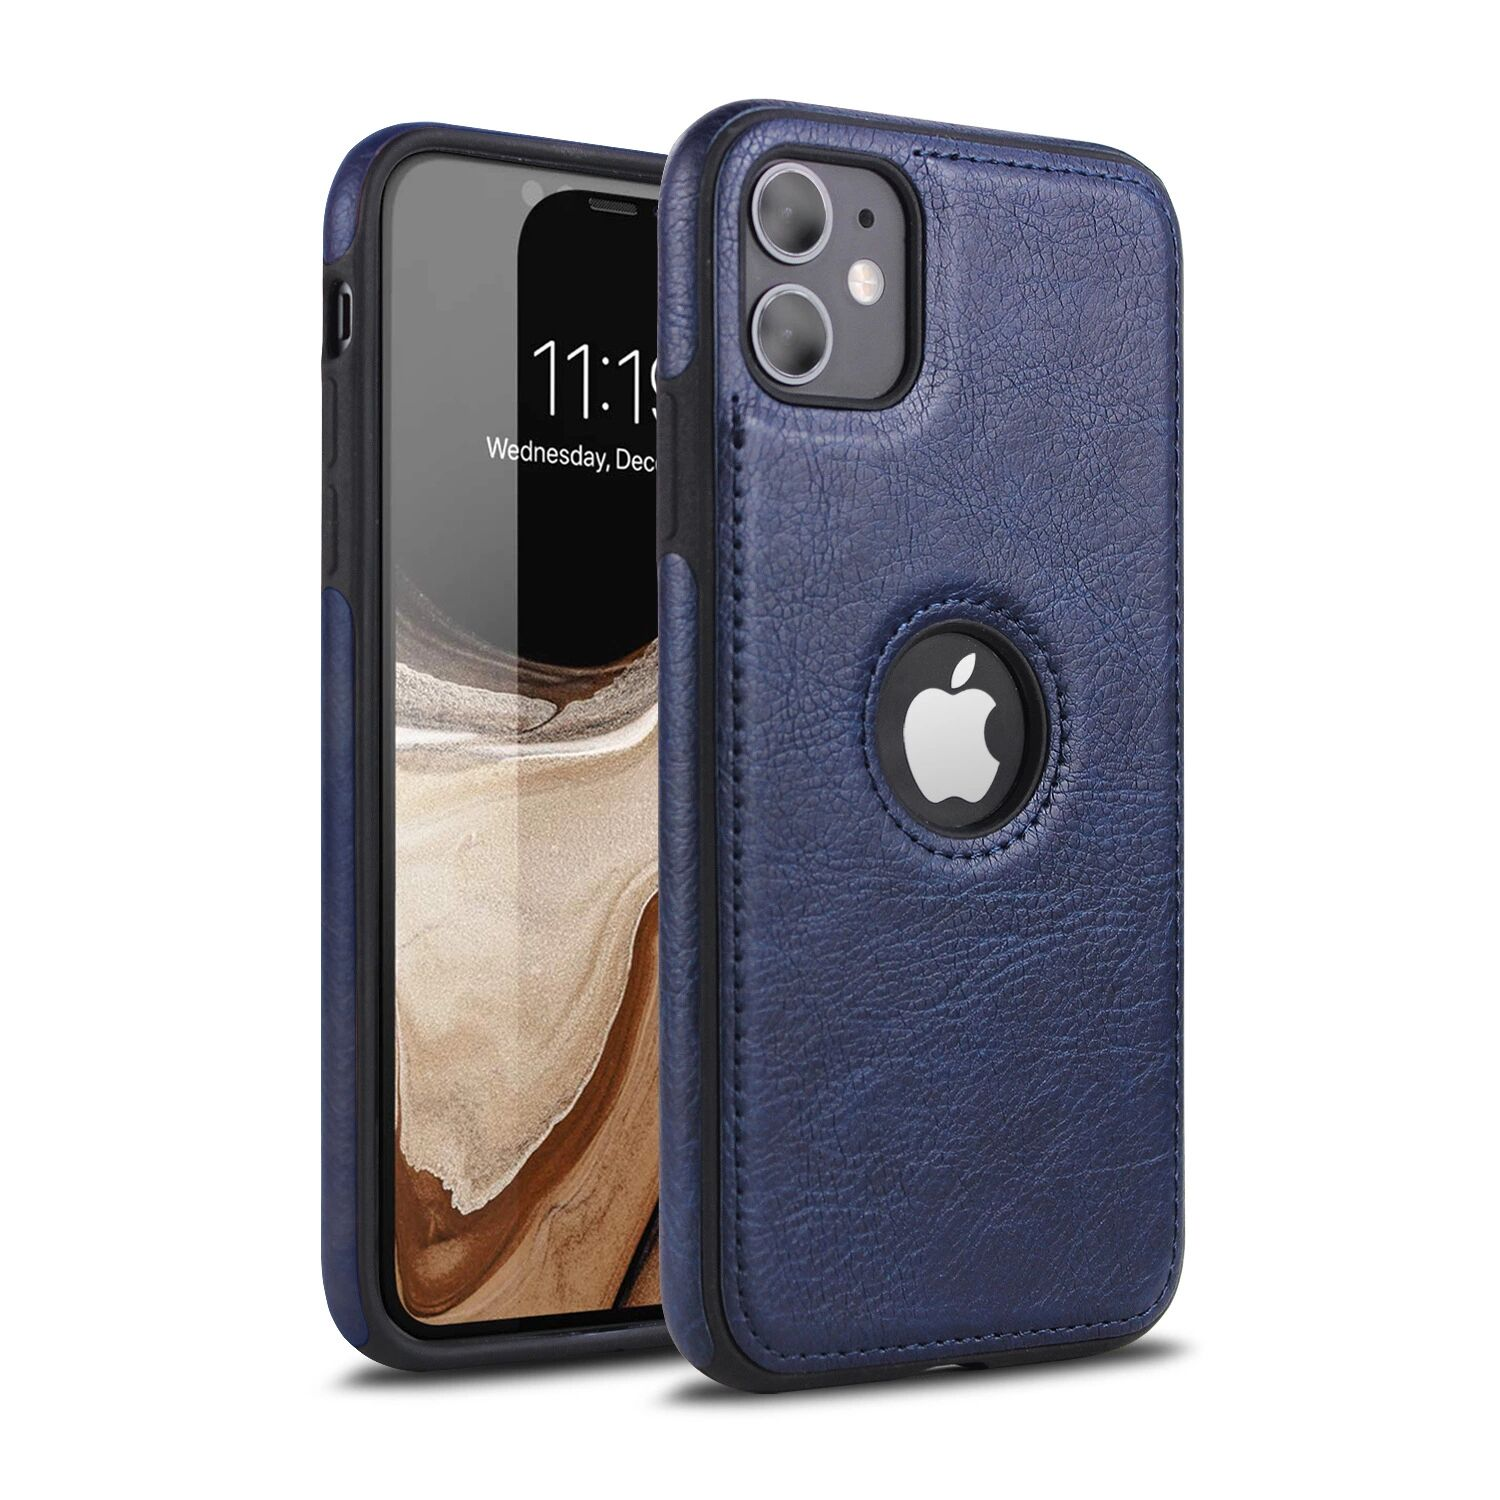 Applicable Car Line Skin Stitching Mobile Phone Skin Case For iPhone 11pro Max 1